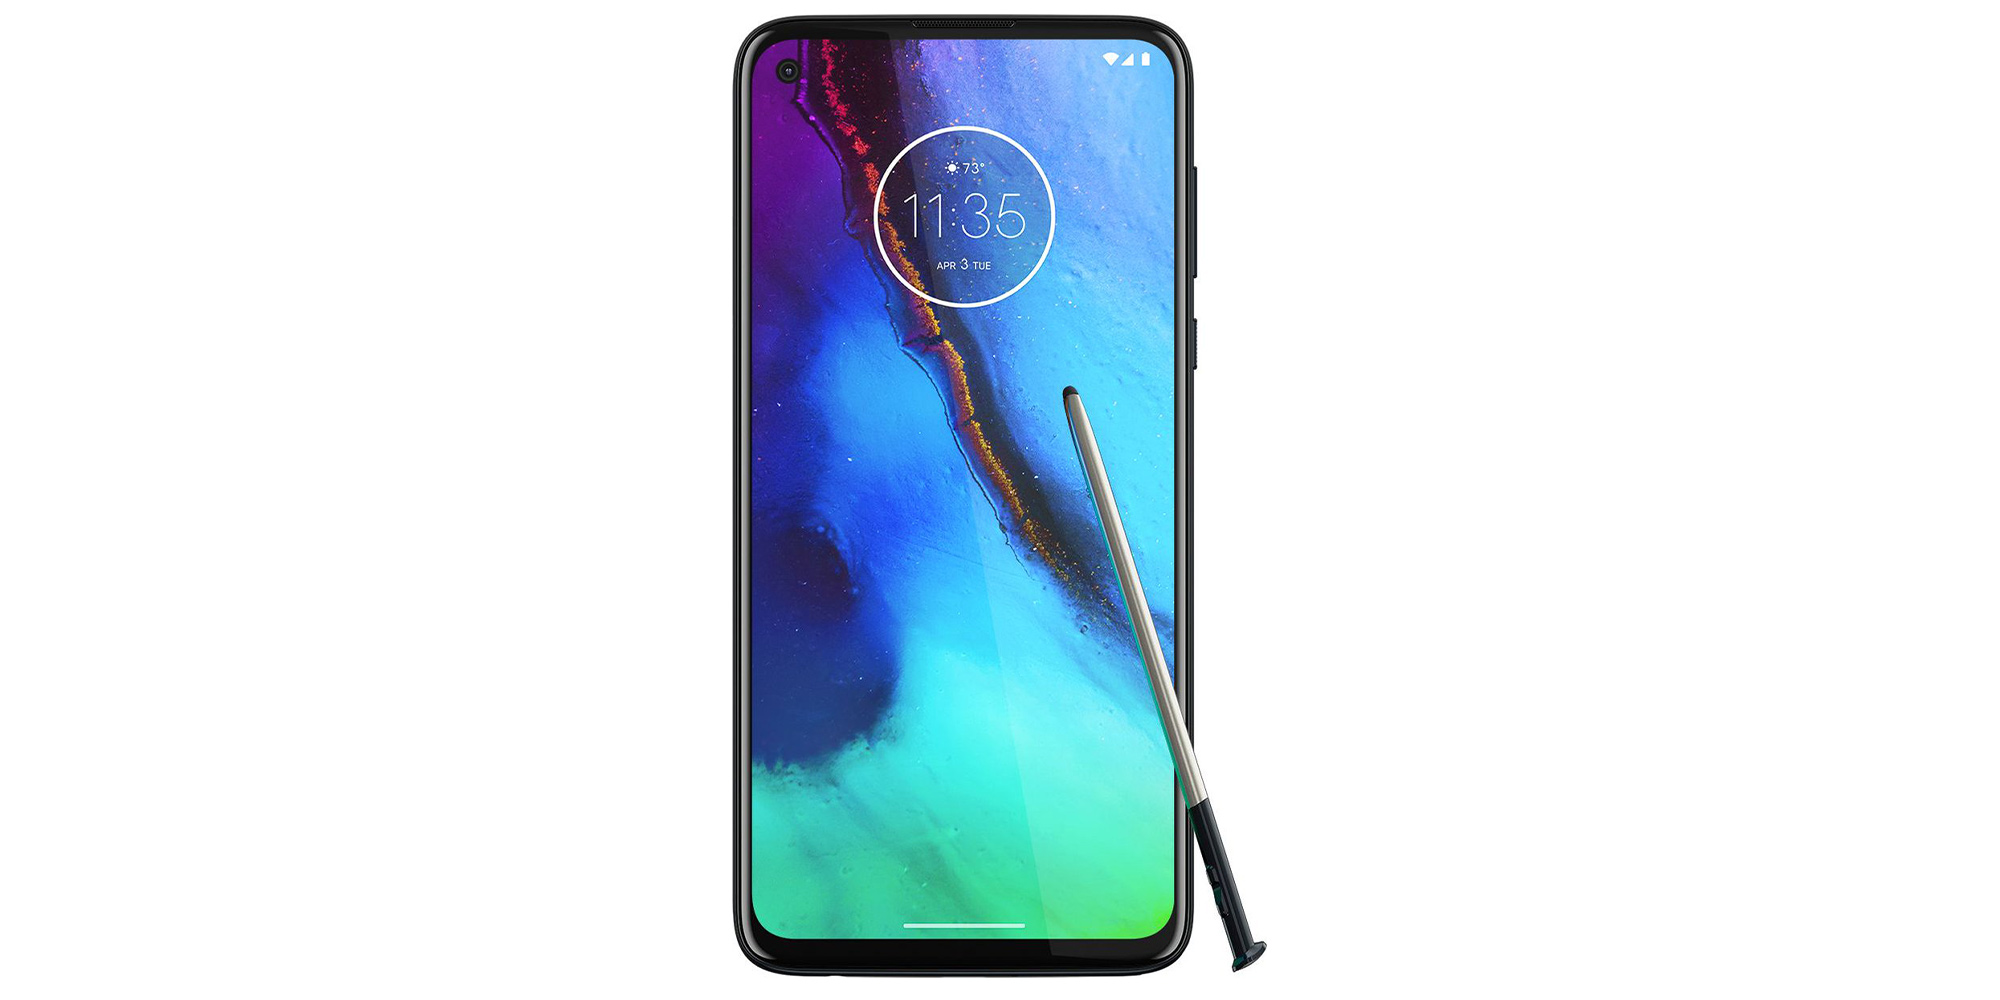 Motorola appears to be working on a cut-price stylus-equipped Galaxy Note competitor - 9to5Google